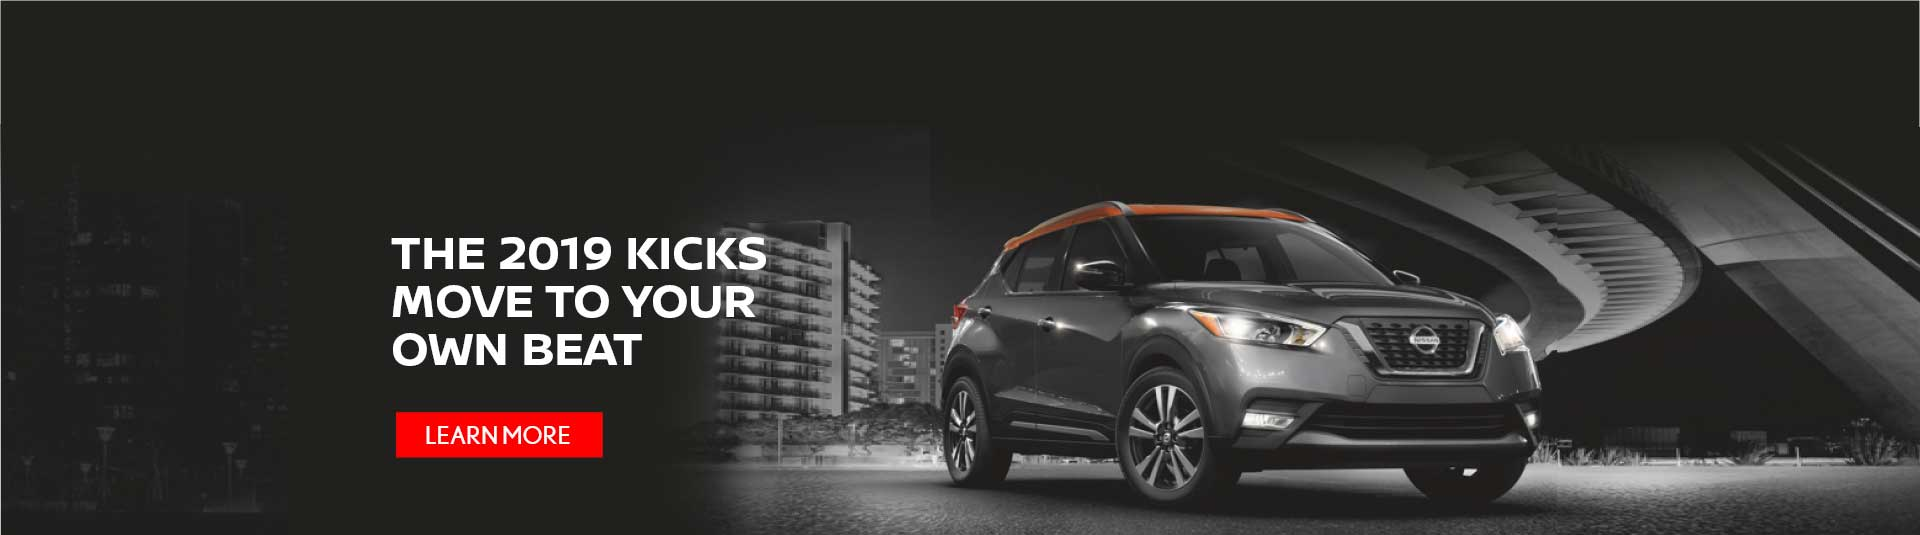 nissan-kicks-hero.jpg